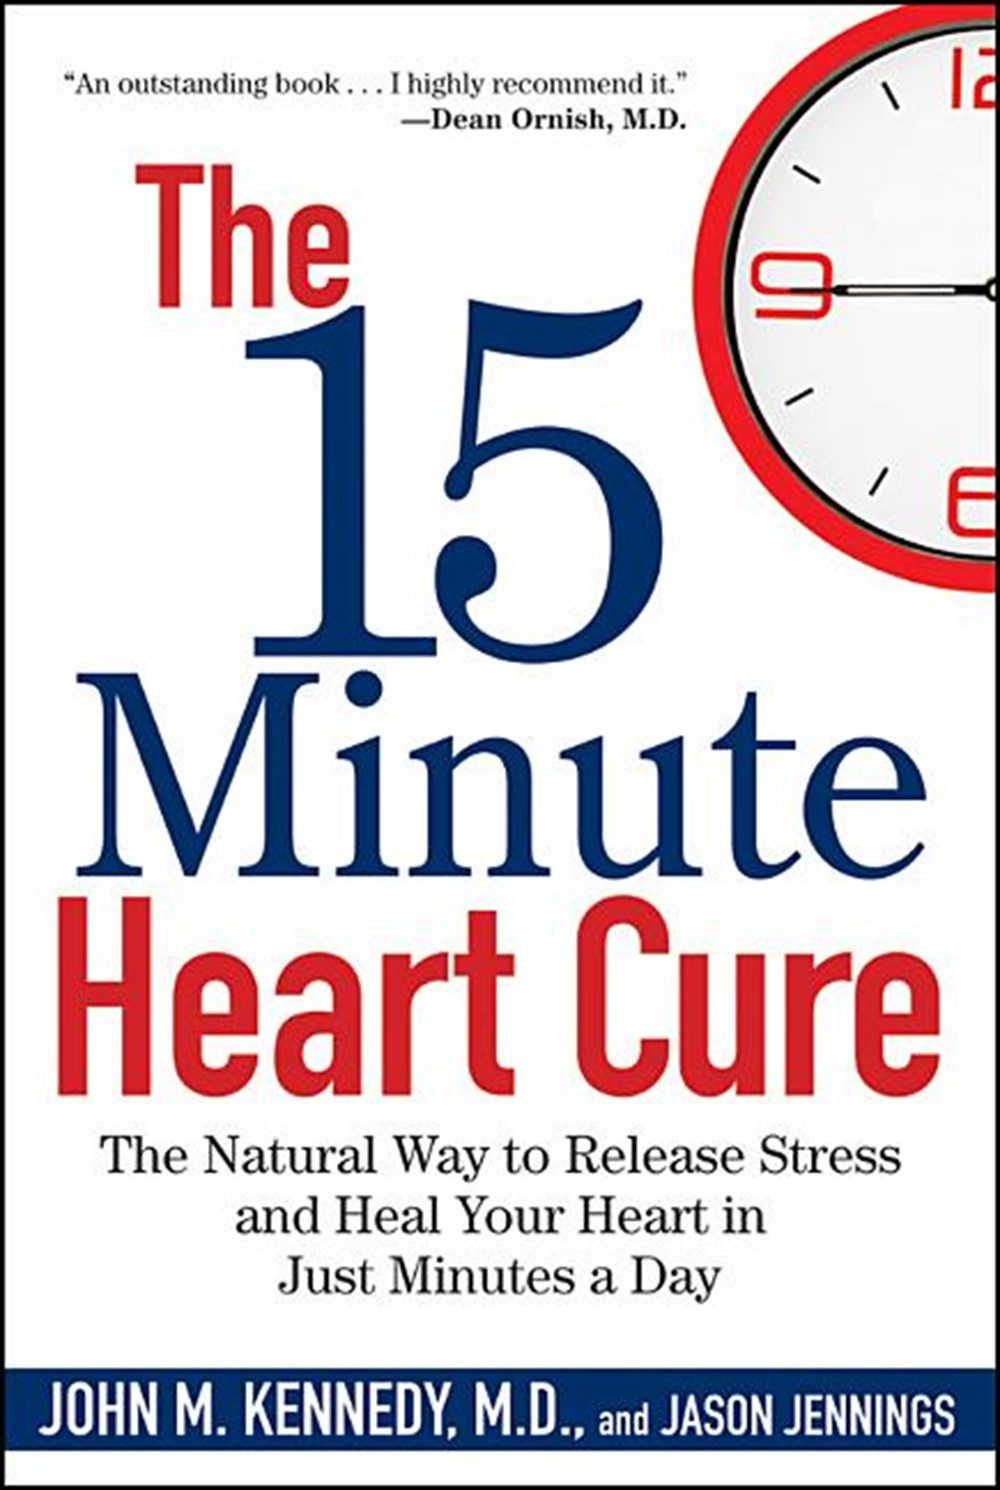 15 Minute Heart Cure The Natural Way to Release Stress and Heal Your Heart in Just Minutes a Day